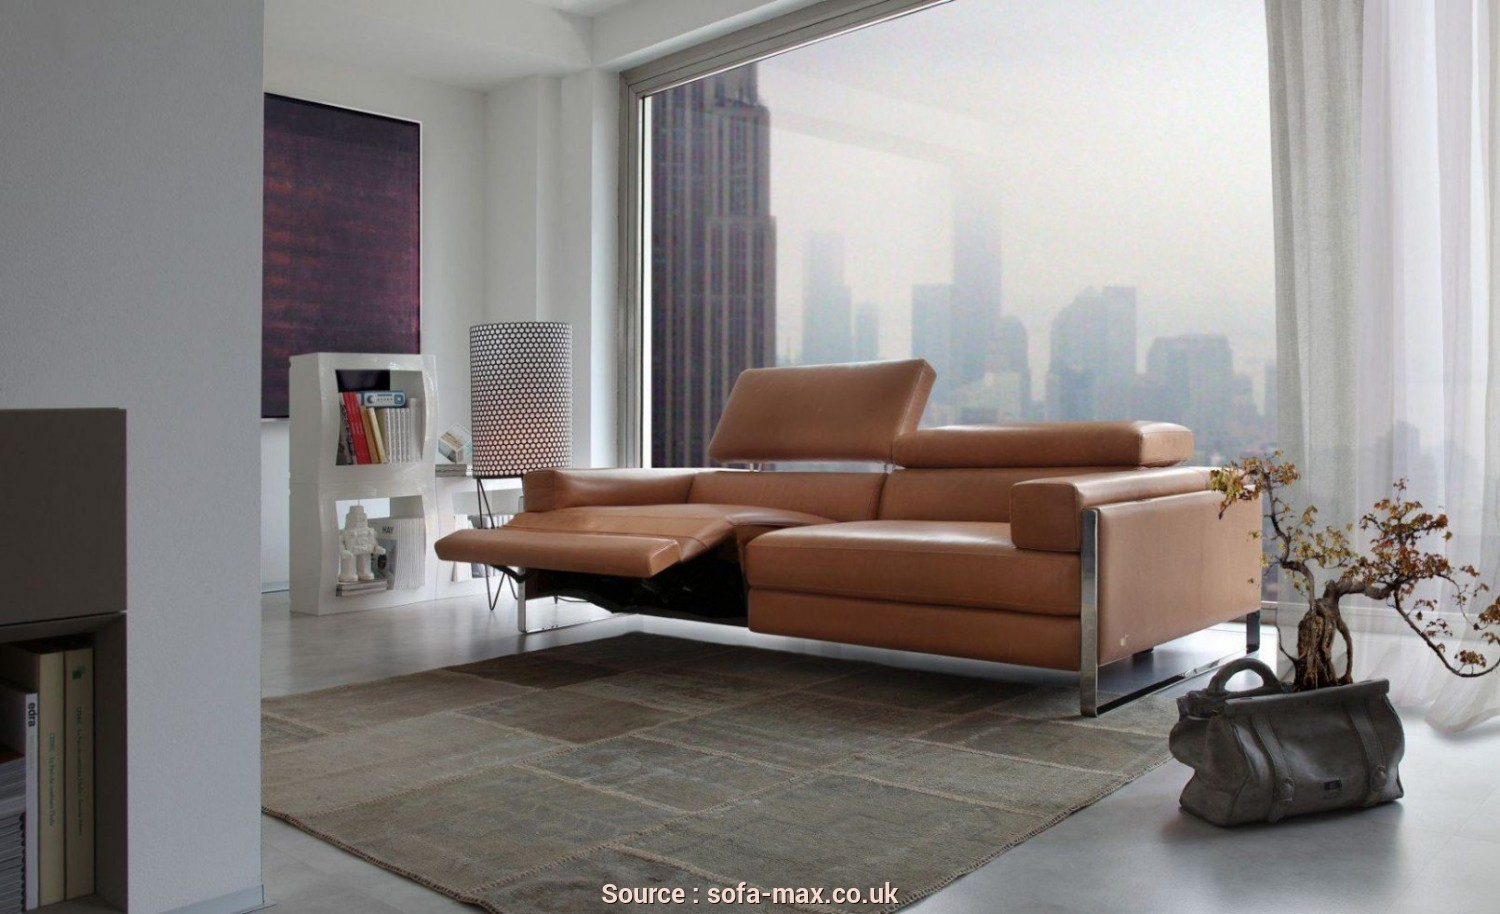 Hip, Sofa Calia Italia, Migliore Calia Italia., Should We Head To Italy, Beautiful Designer Sofas? Italy Is Renowned, Being, Masters Of Leather Sofa Upholstery, Uphold The